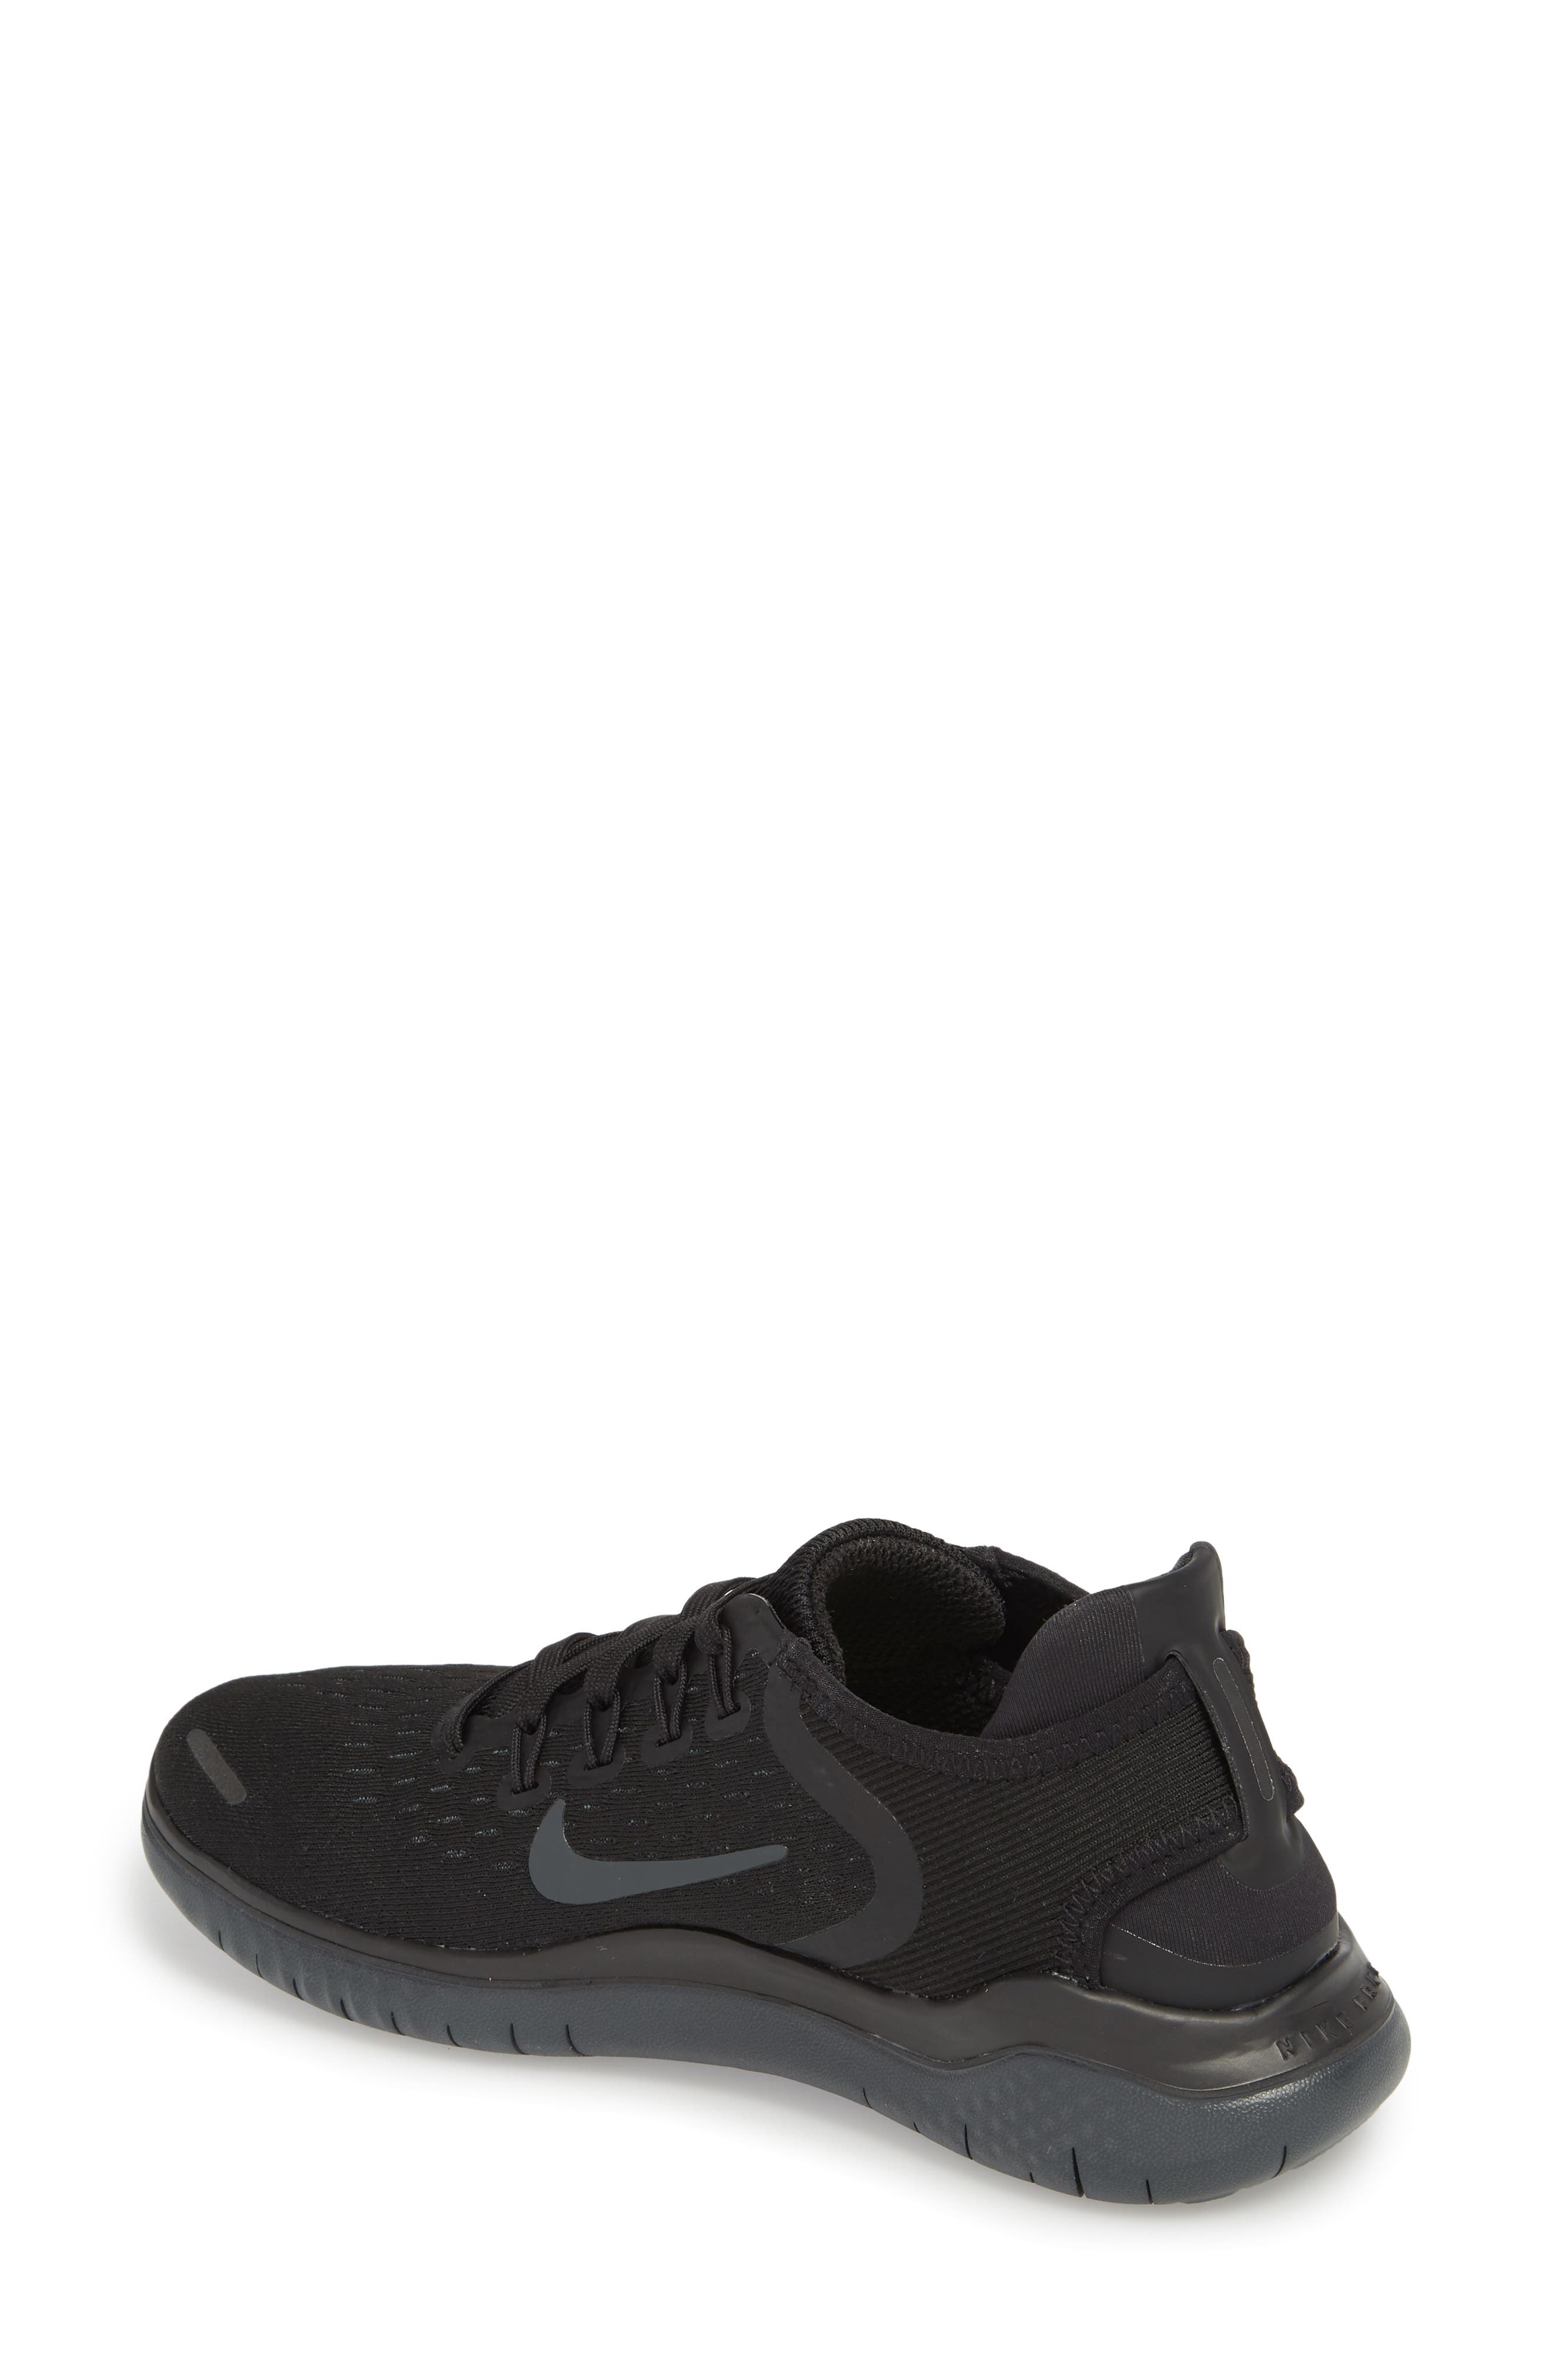 superior quality 2beb9 6d37c ... italy for women nike free run nordstrom 8a503 52d1b